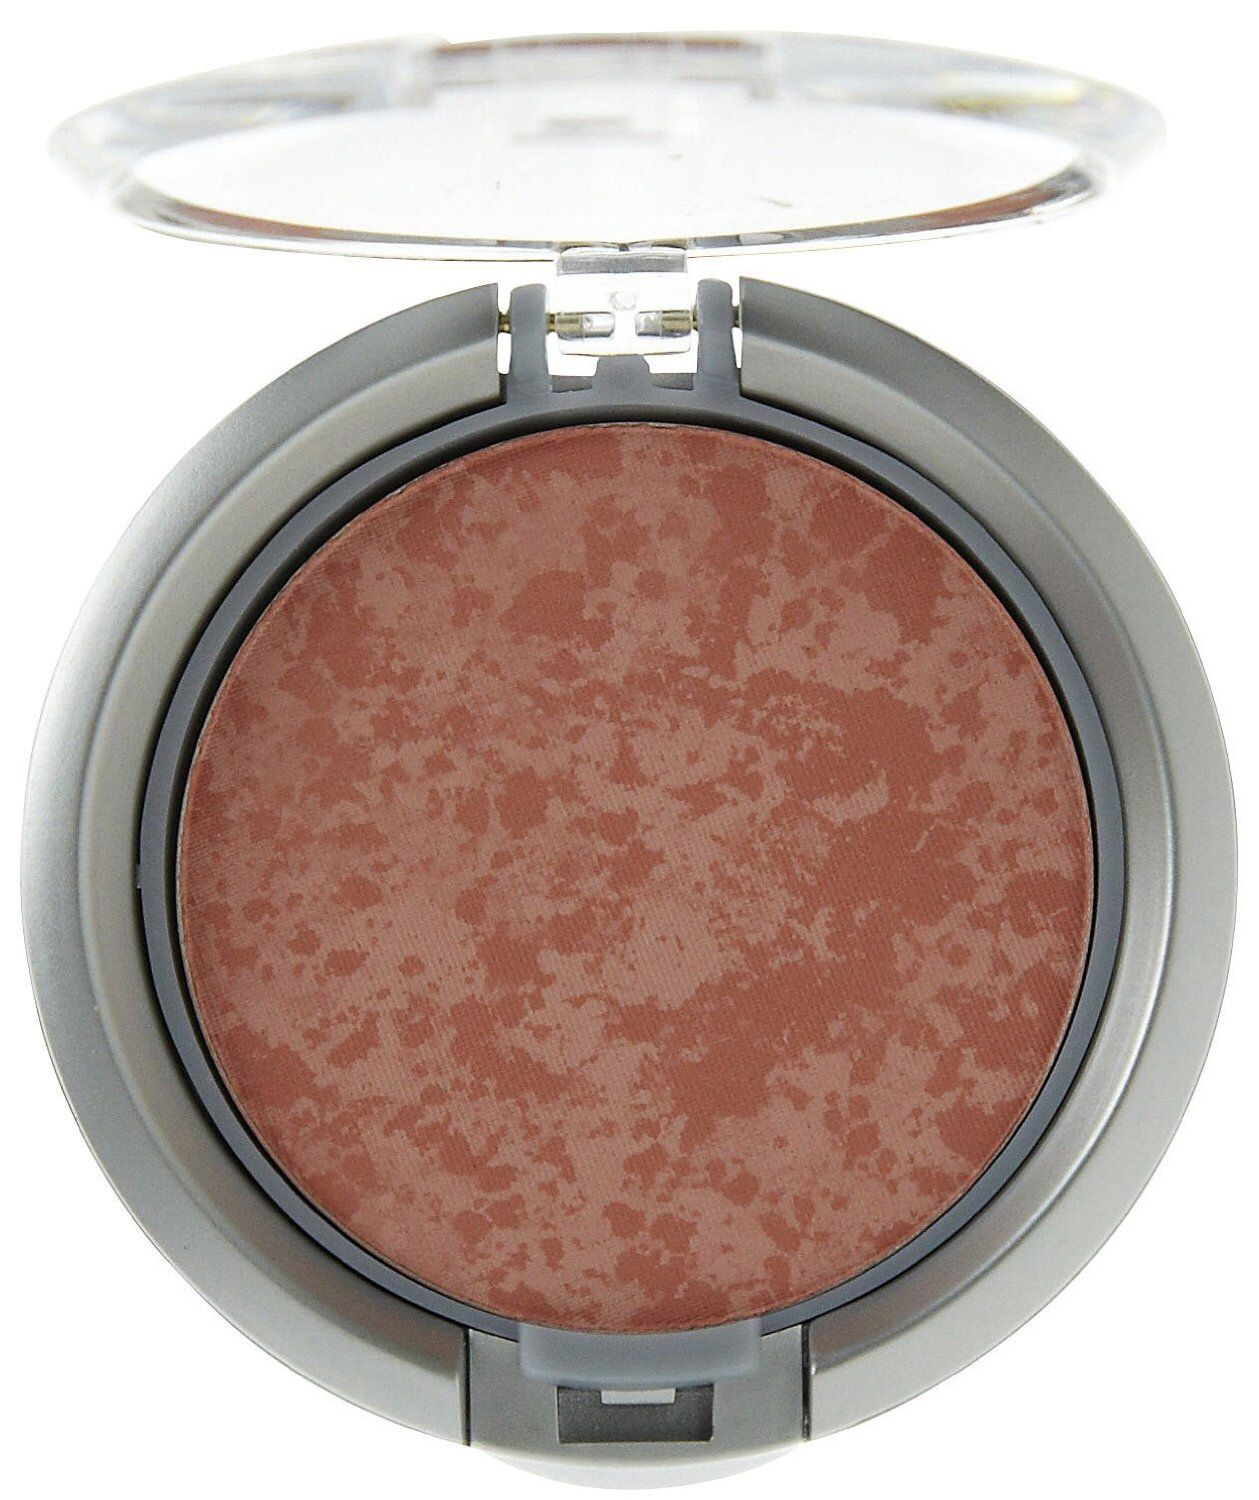 I found this item on Tophatter Physicians formula, Blush